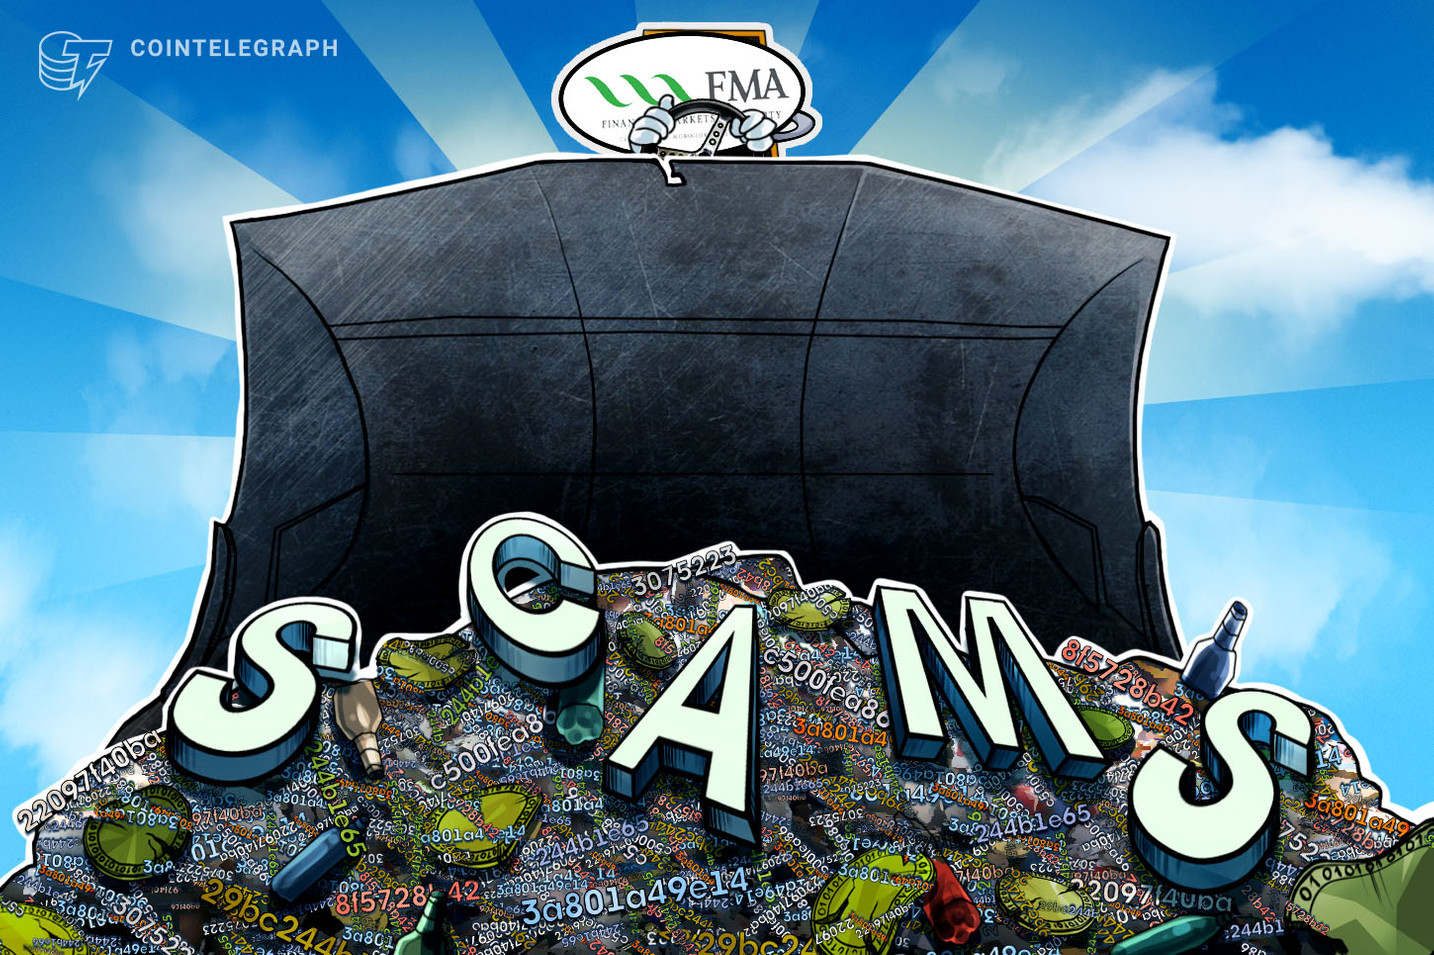 New Zealand: Financial Authority Blacklists Another Three Crypto Platforms Marked as 'Suspected Scams'